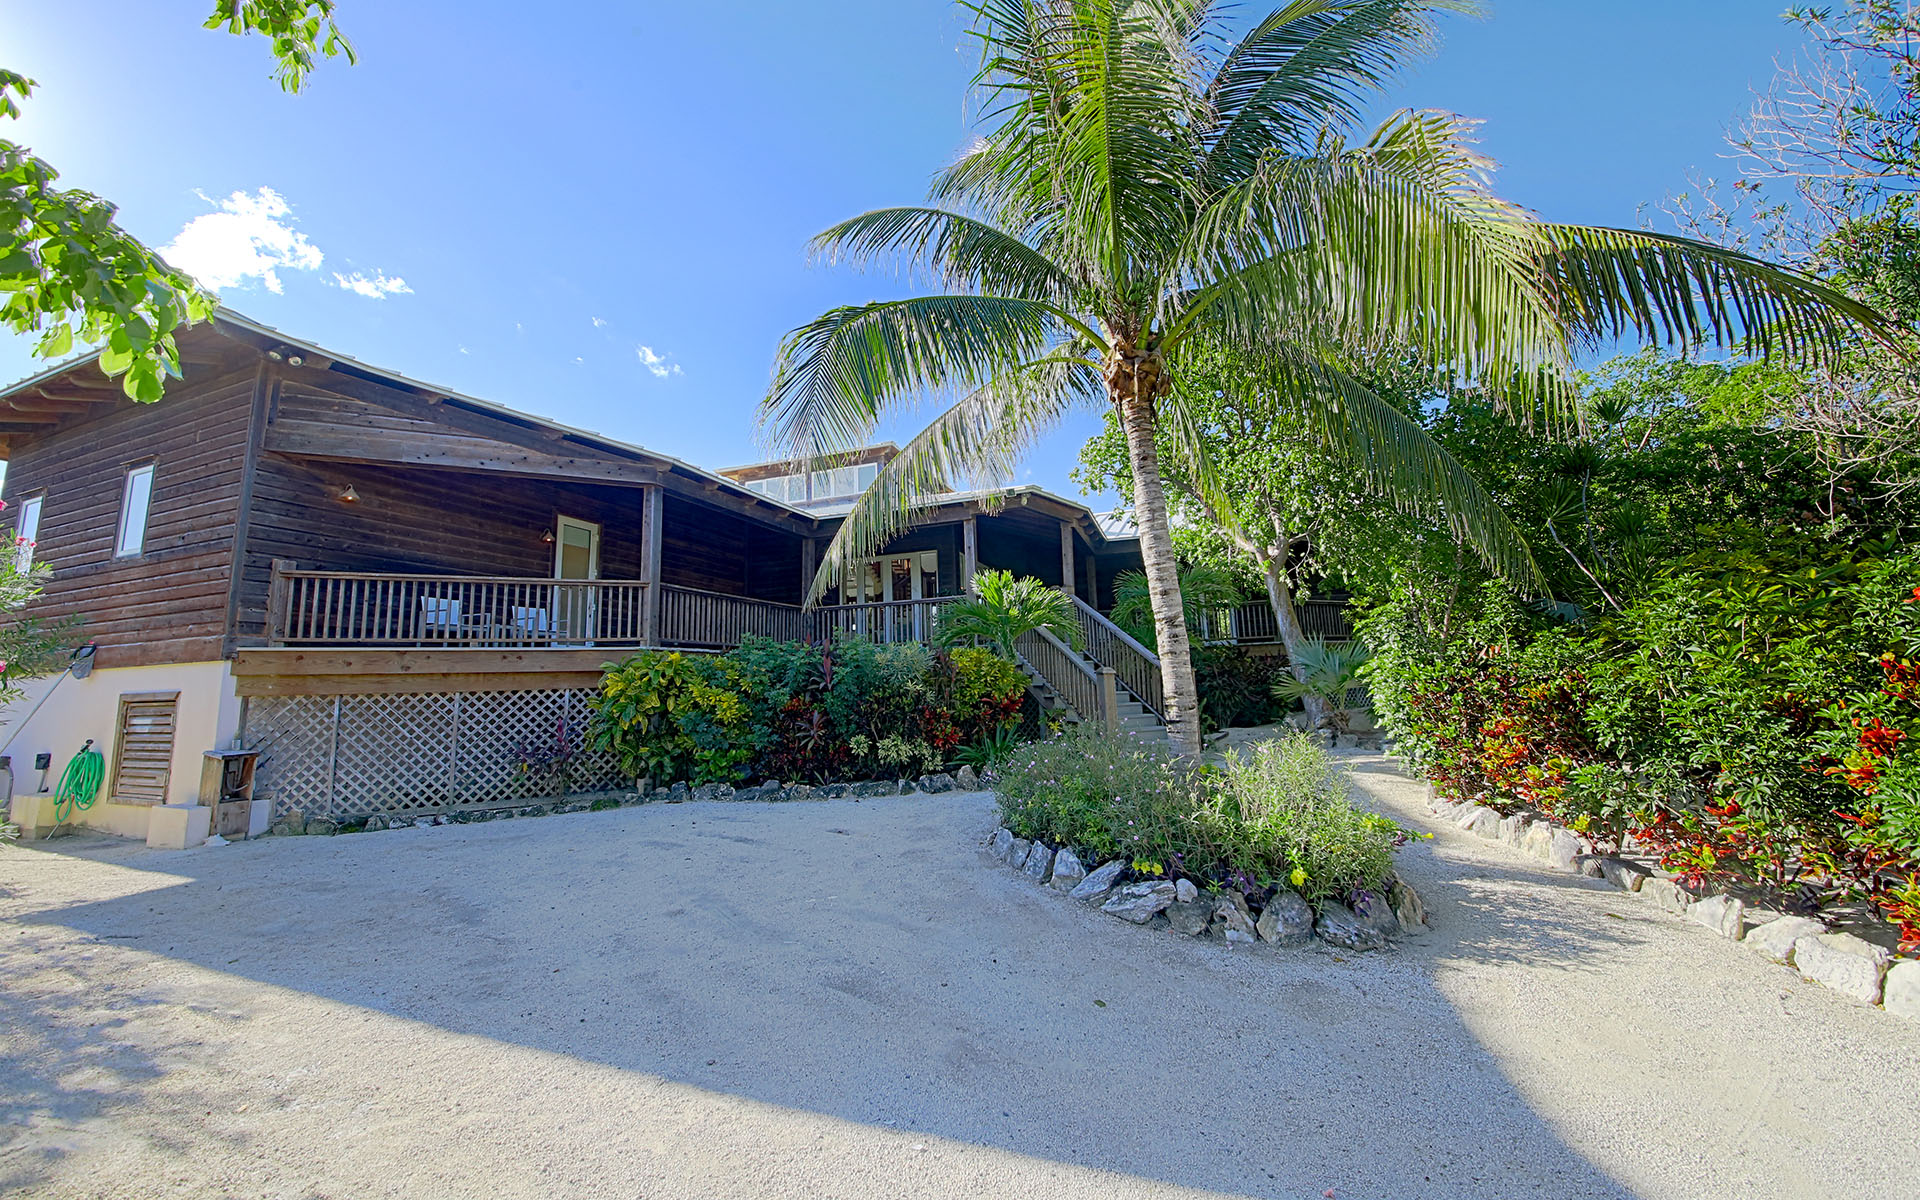 Single Family Home for Sale at Green Turtle - Winding Bay - MLS 31750 Winding Bay, Abaco, Bahamas